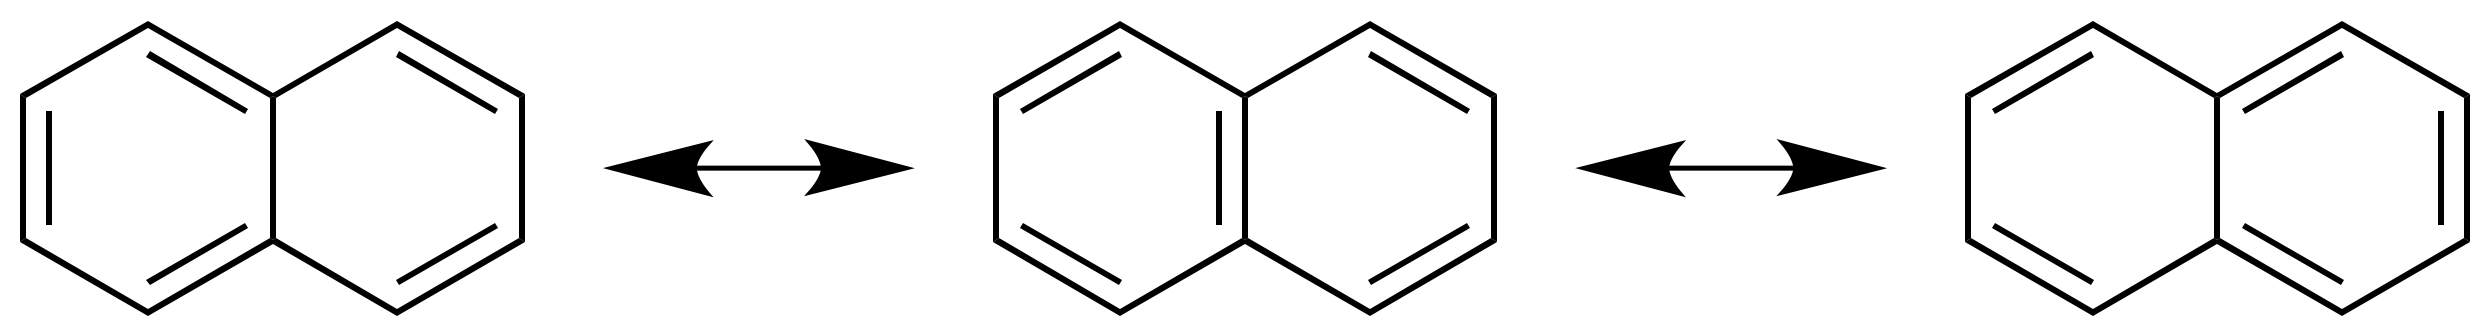 Resonance structures of naphthalene